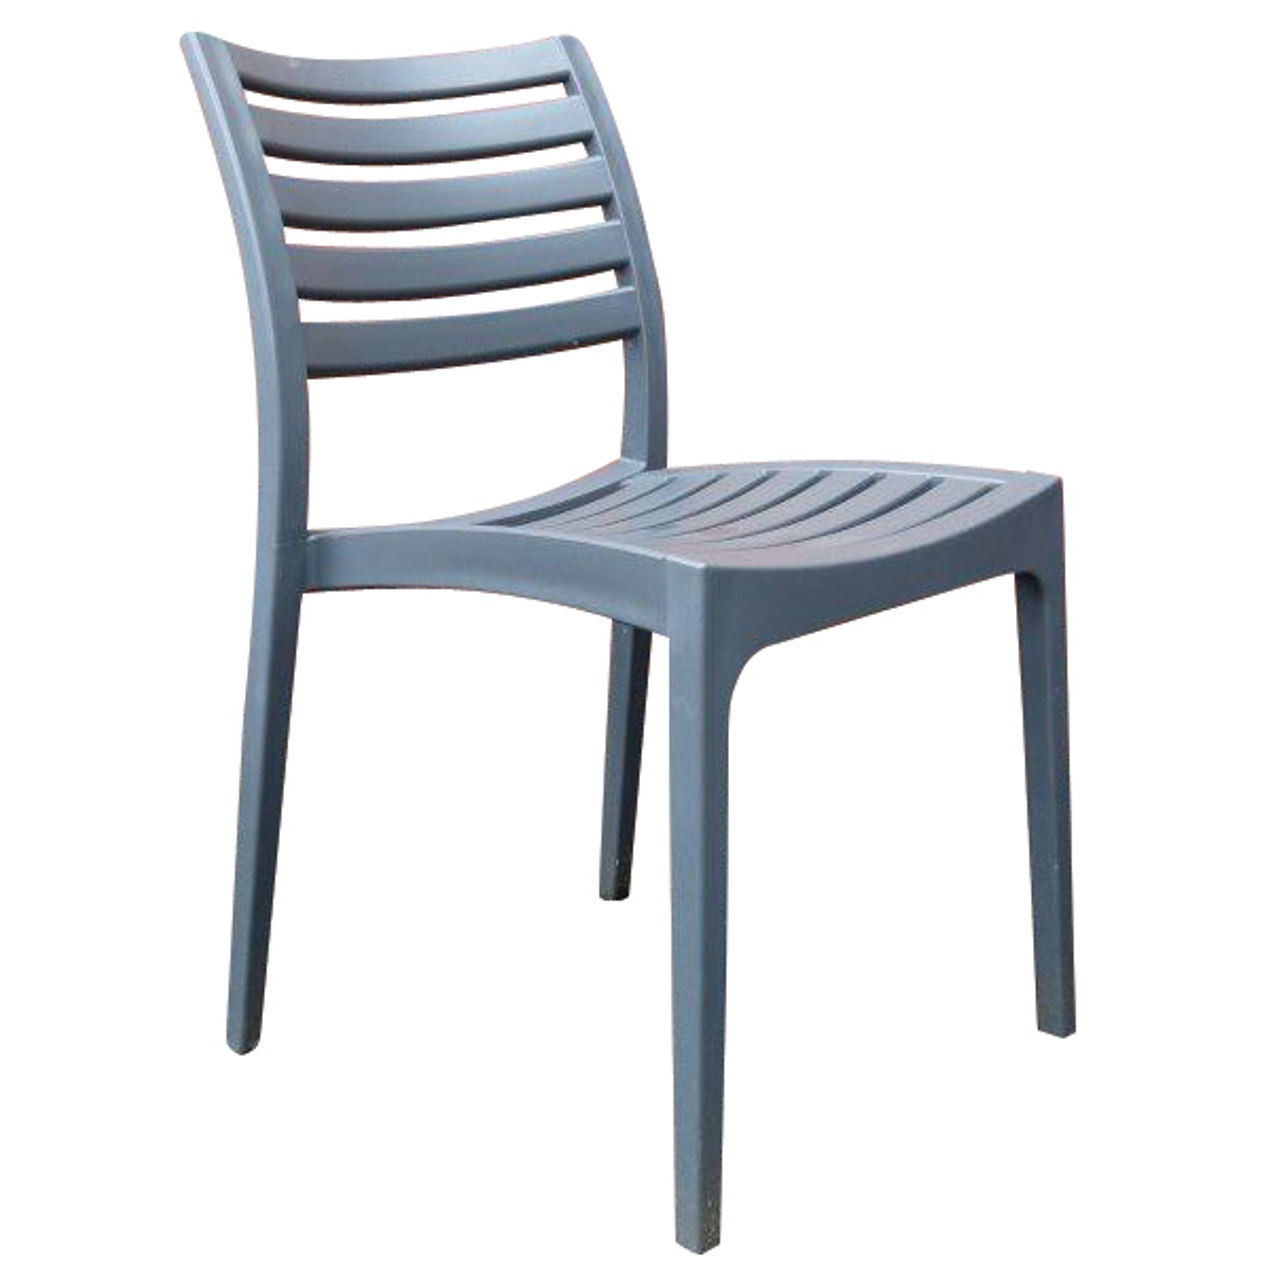 Area side chair